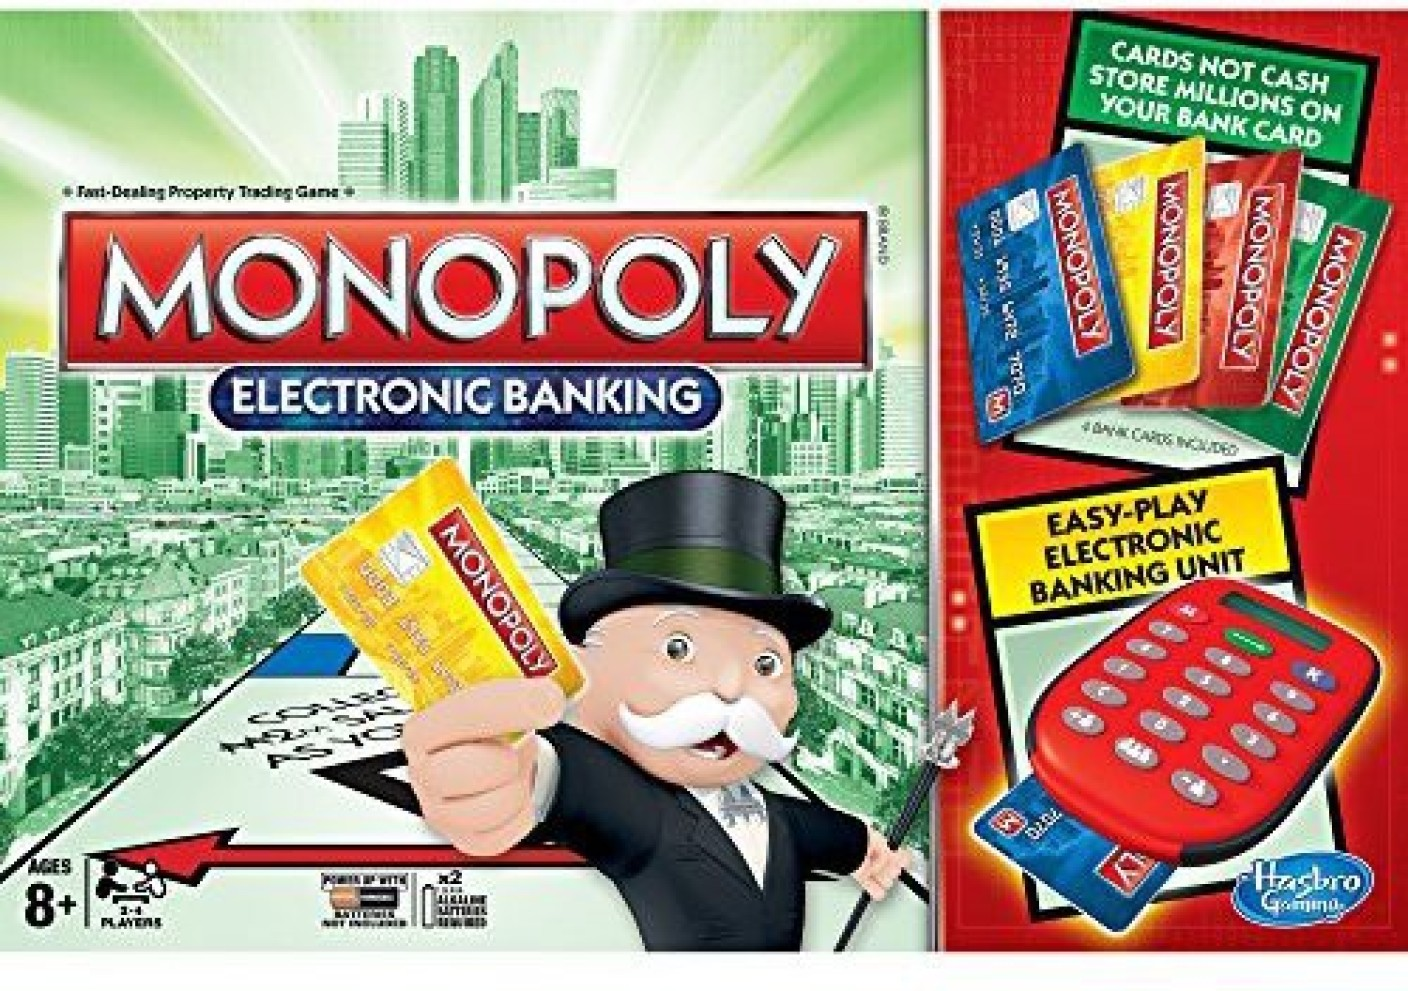 Hasbro monopoly electronic banking board game on offer